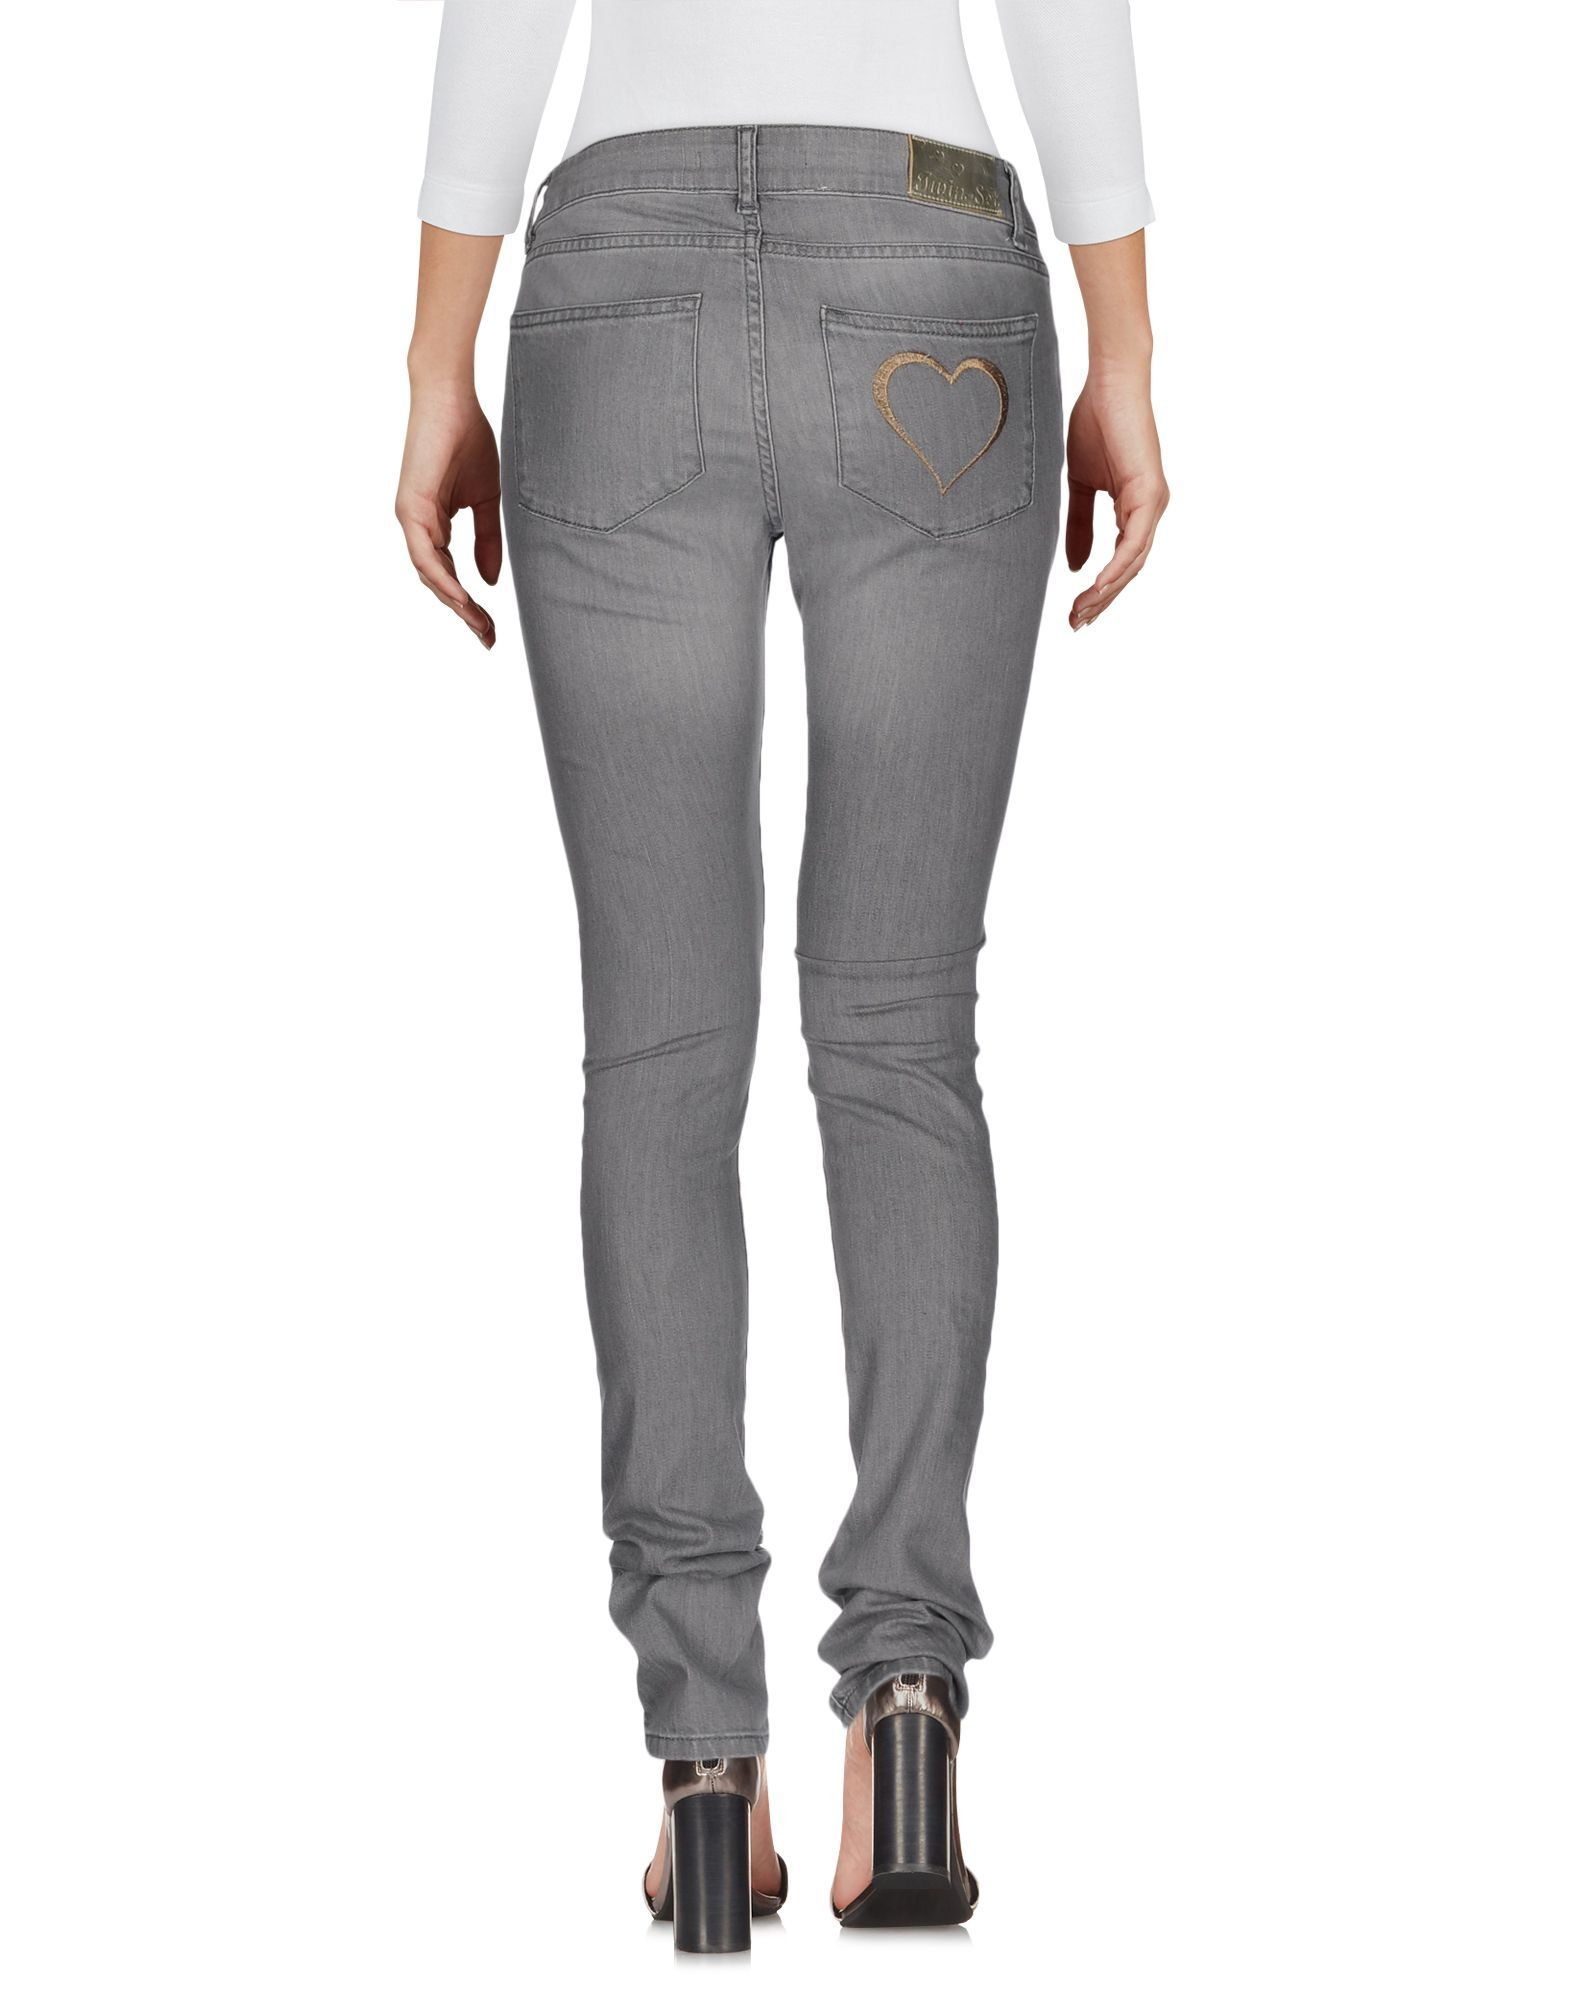 Twinset Grey Cotton Skinny Jeans